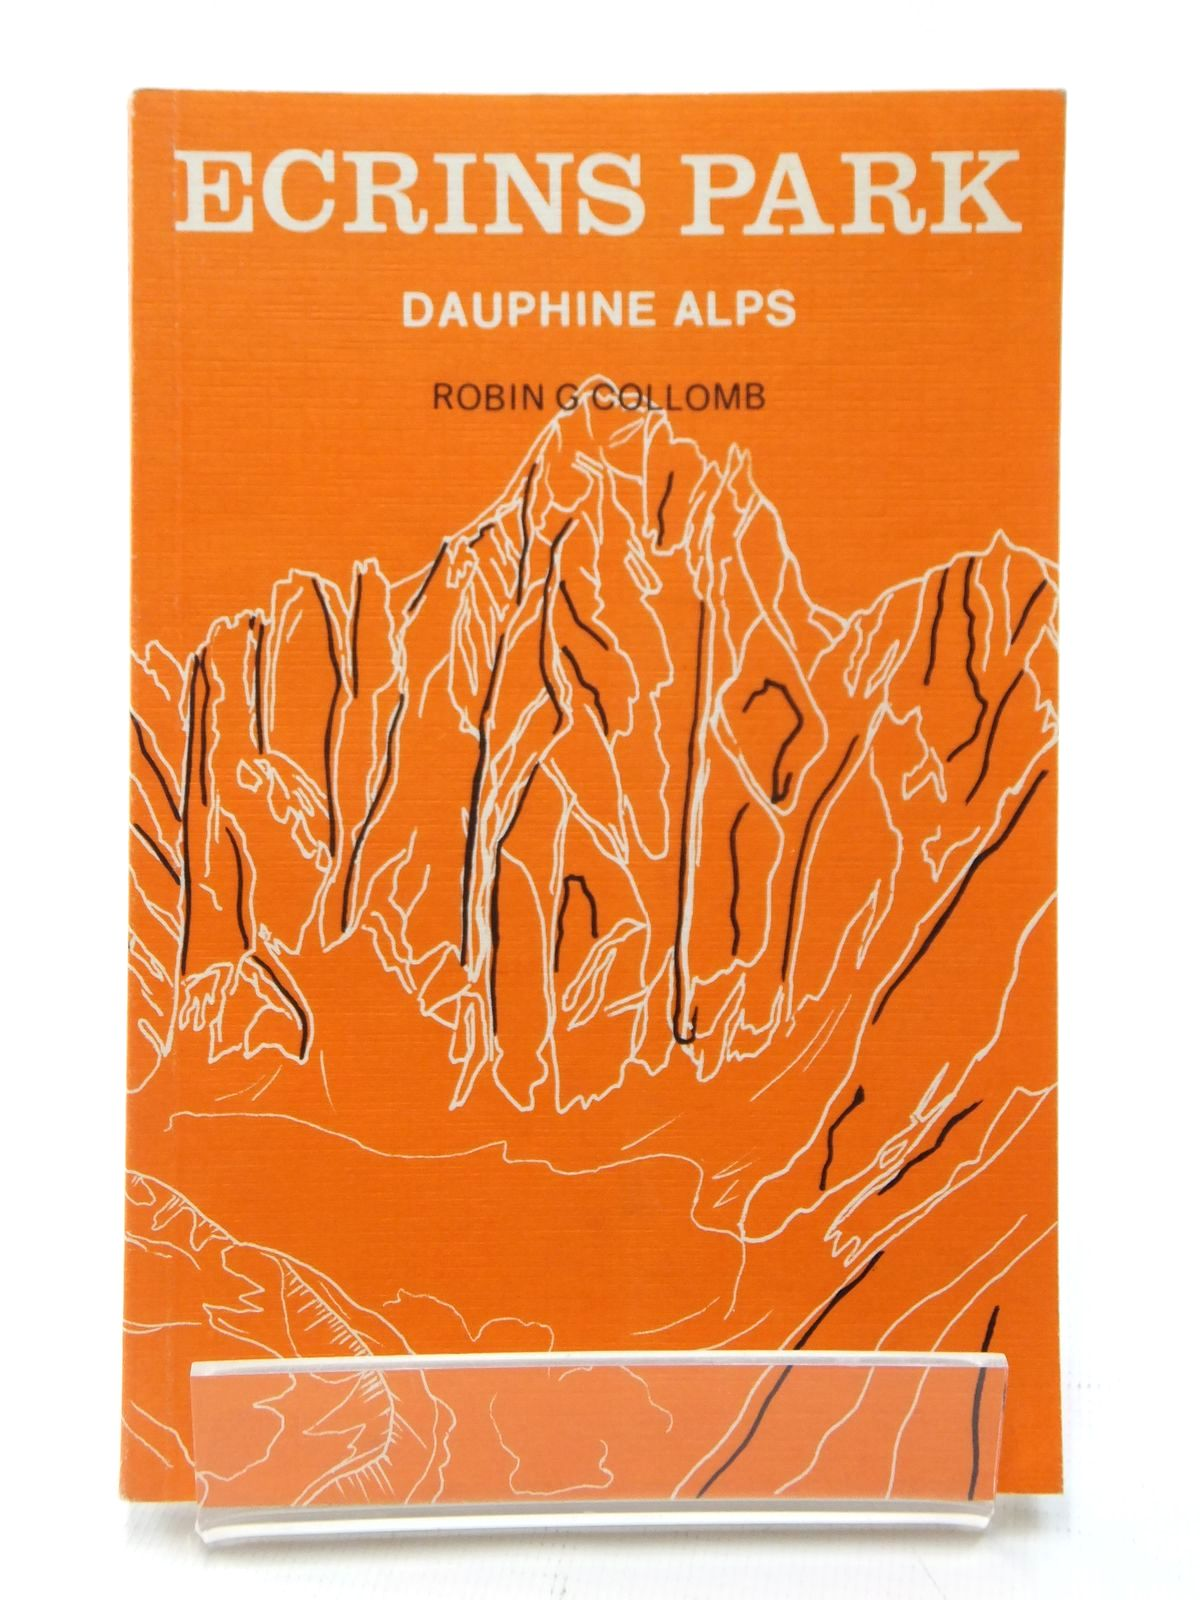 Photo of ECRINS PARK DAUPHINE ALPS written by Collomb, Robin G. published by West Col Productions (STOCK CODE: 2122448)  for sale by Stella & Rose's Books